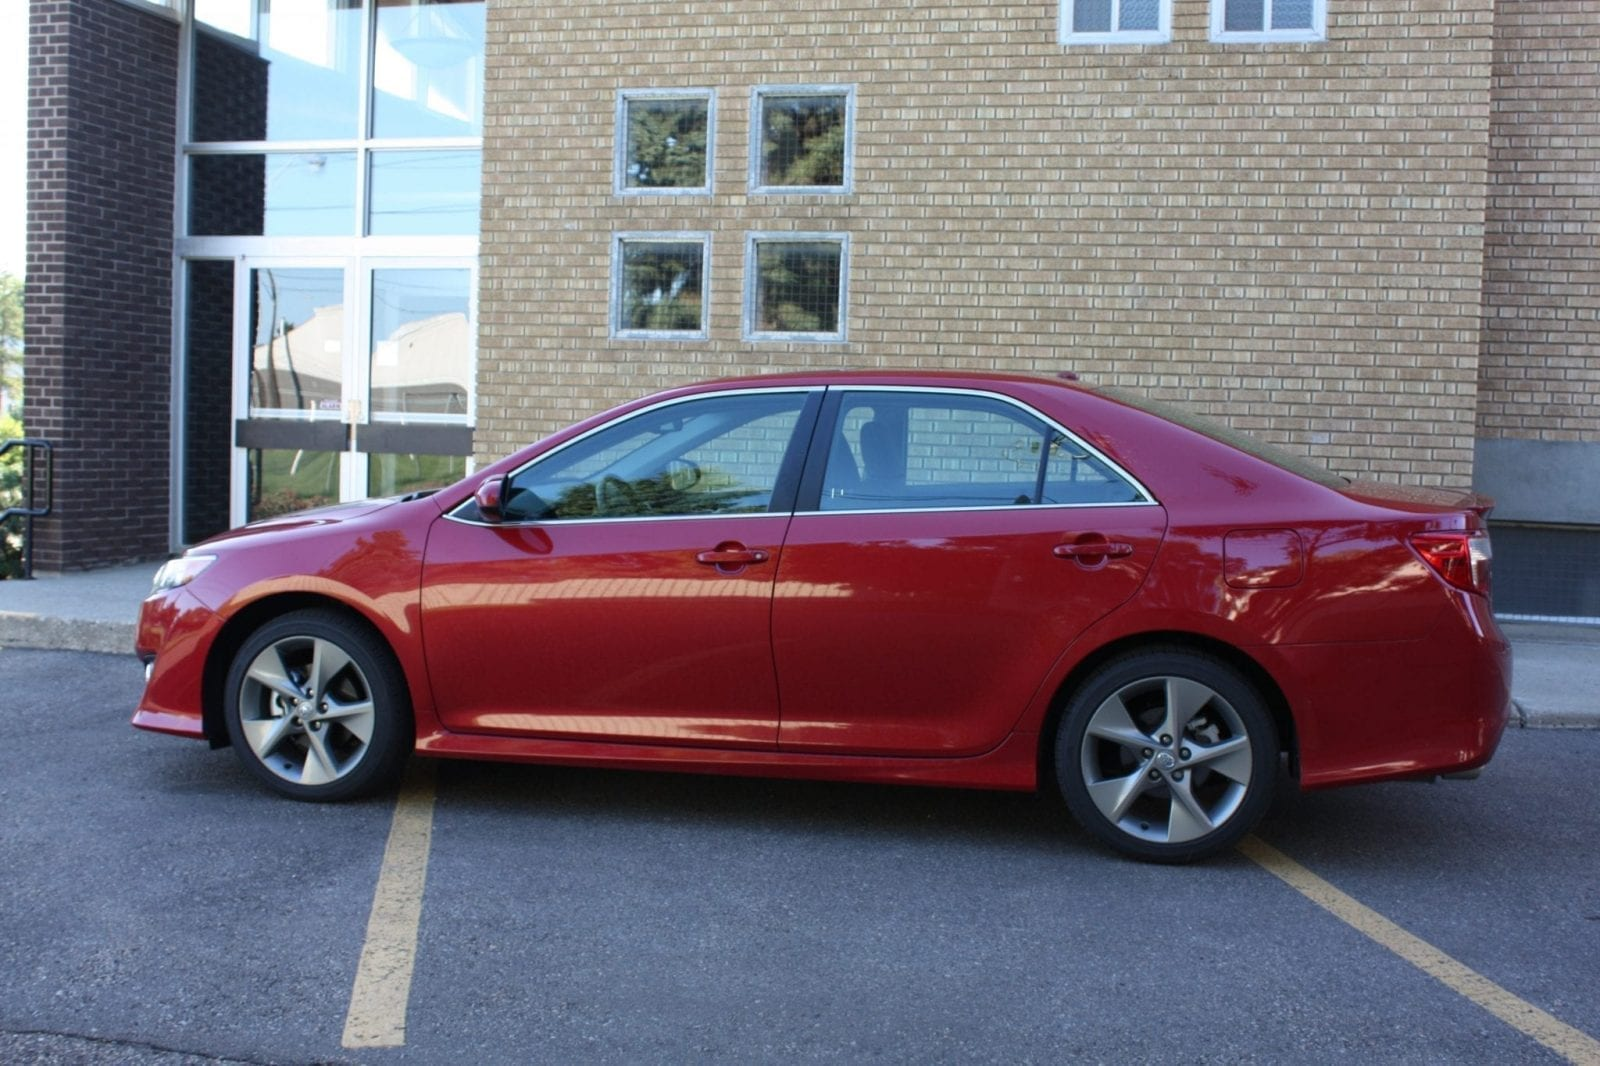 Camrys Start At CDN $23,700 U2013 This Mid Line SE Trim With The Premium Option  Package Rings In At CDN $33,785, Everything In. You Can Step Up To A Loaded  XLE ...